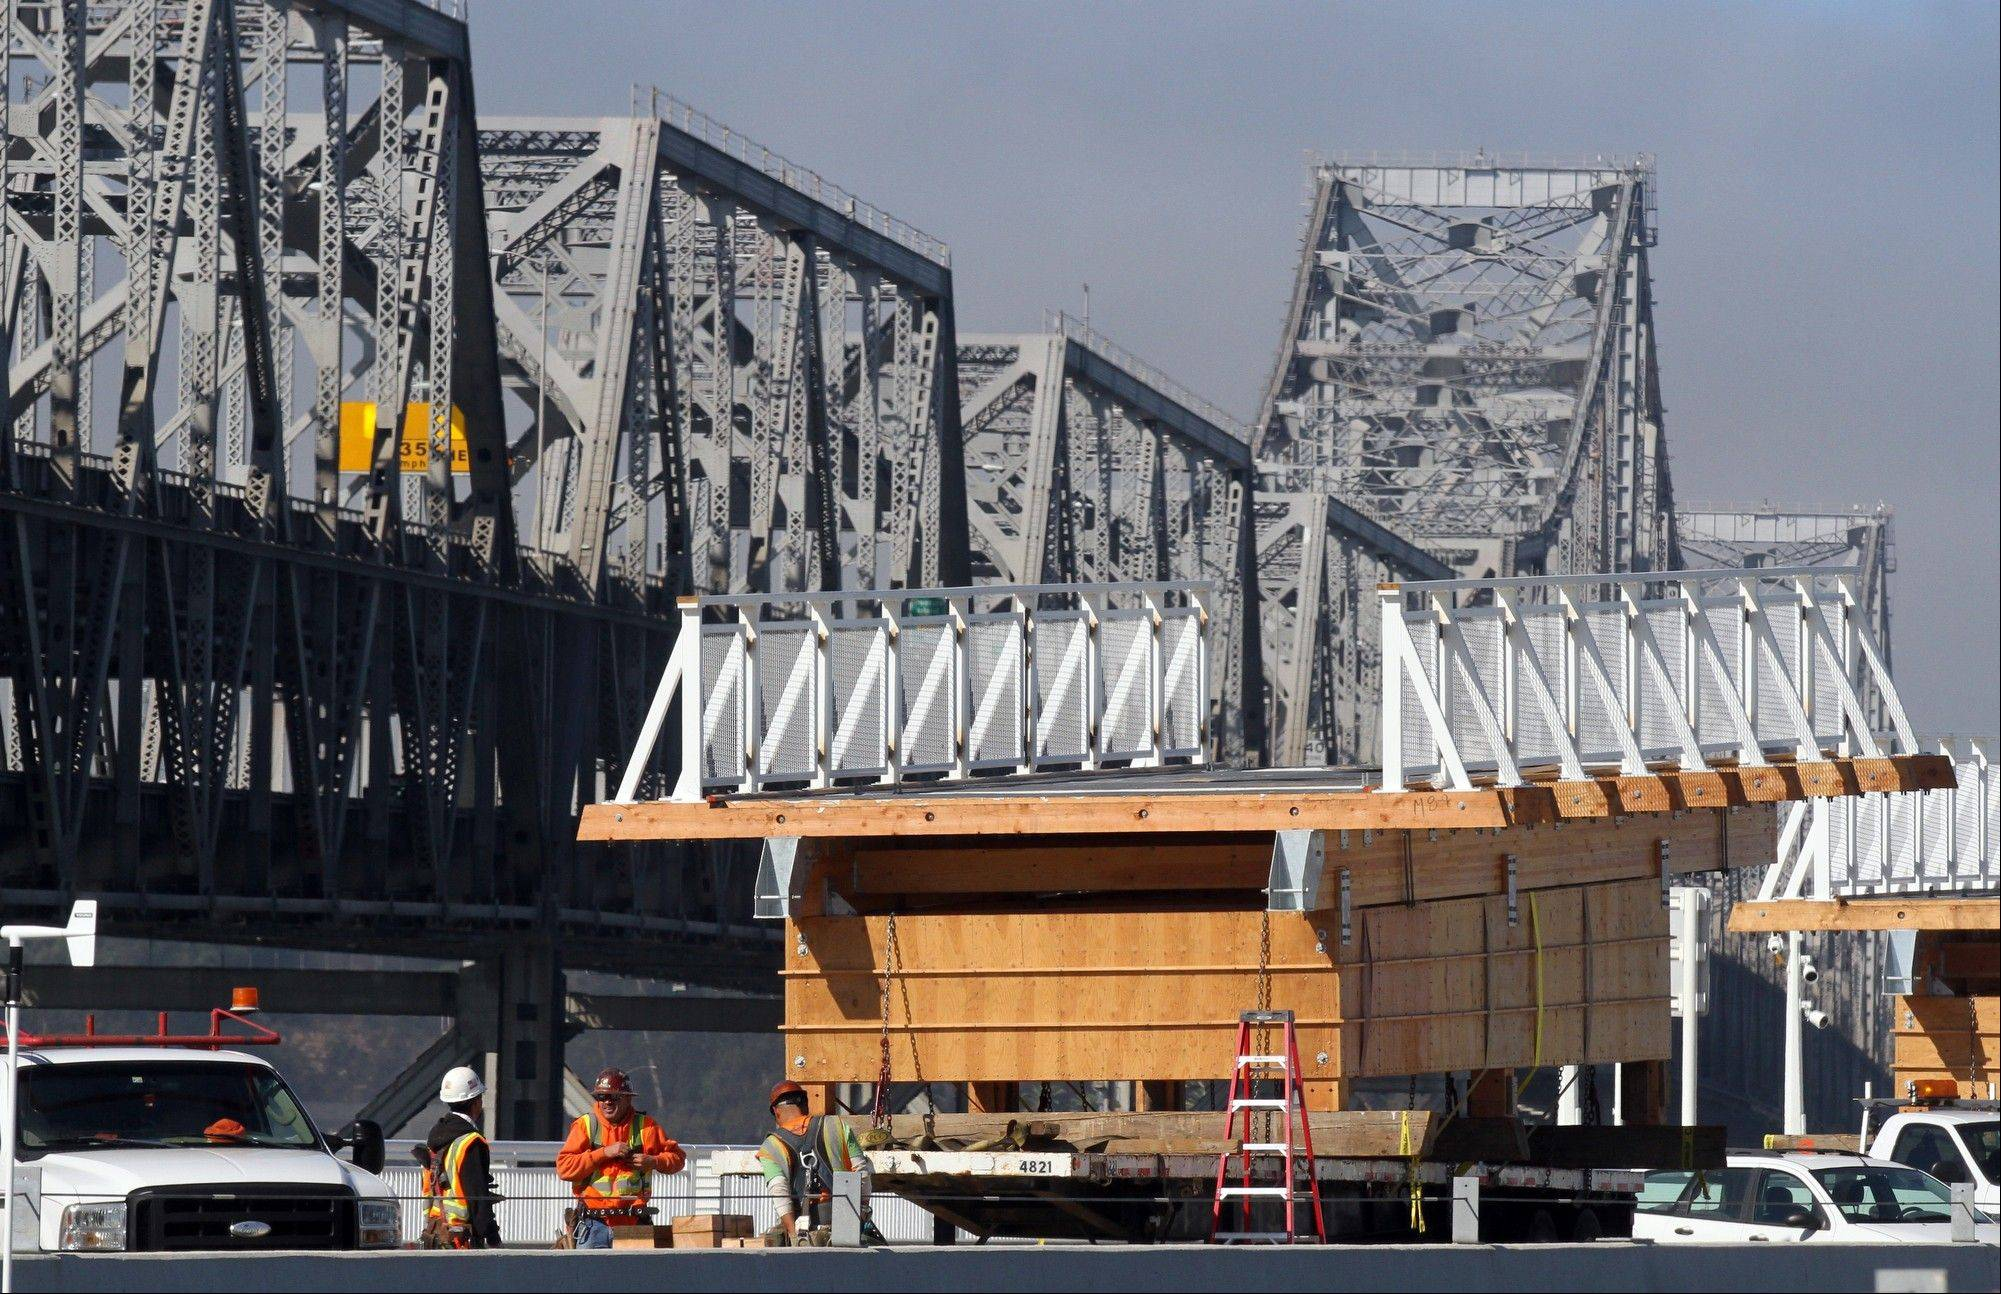 Pre-built sections of the bike bridge sit waiting to be installed Friday on the Bay Bridge in Oakland, Calif.